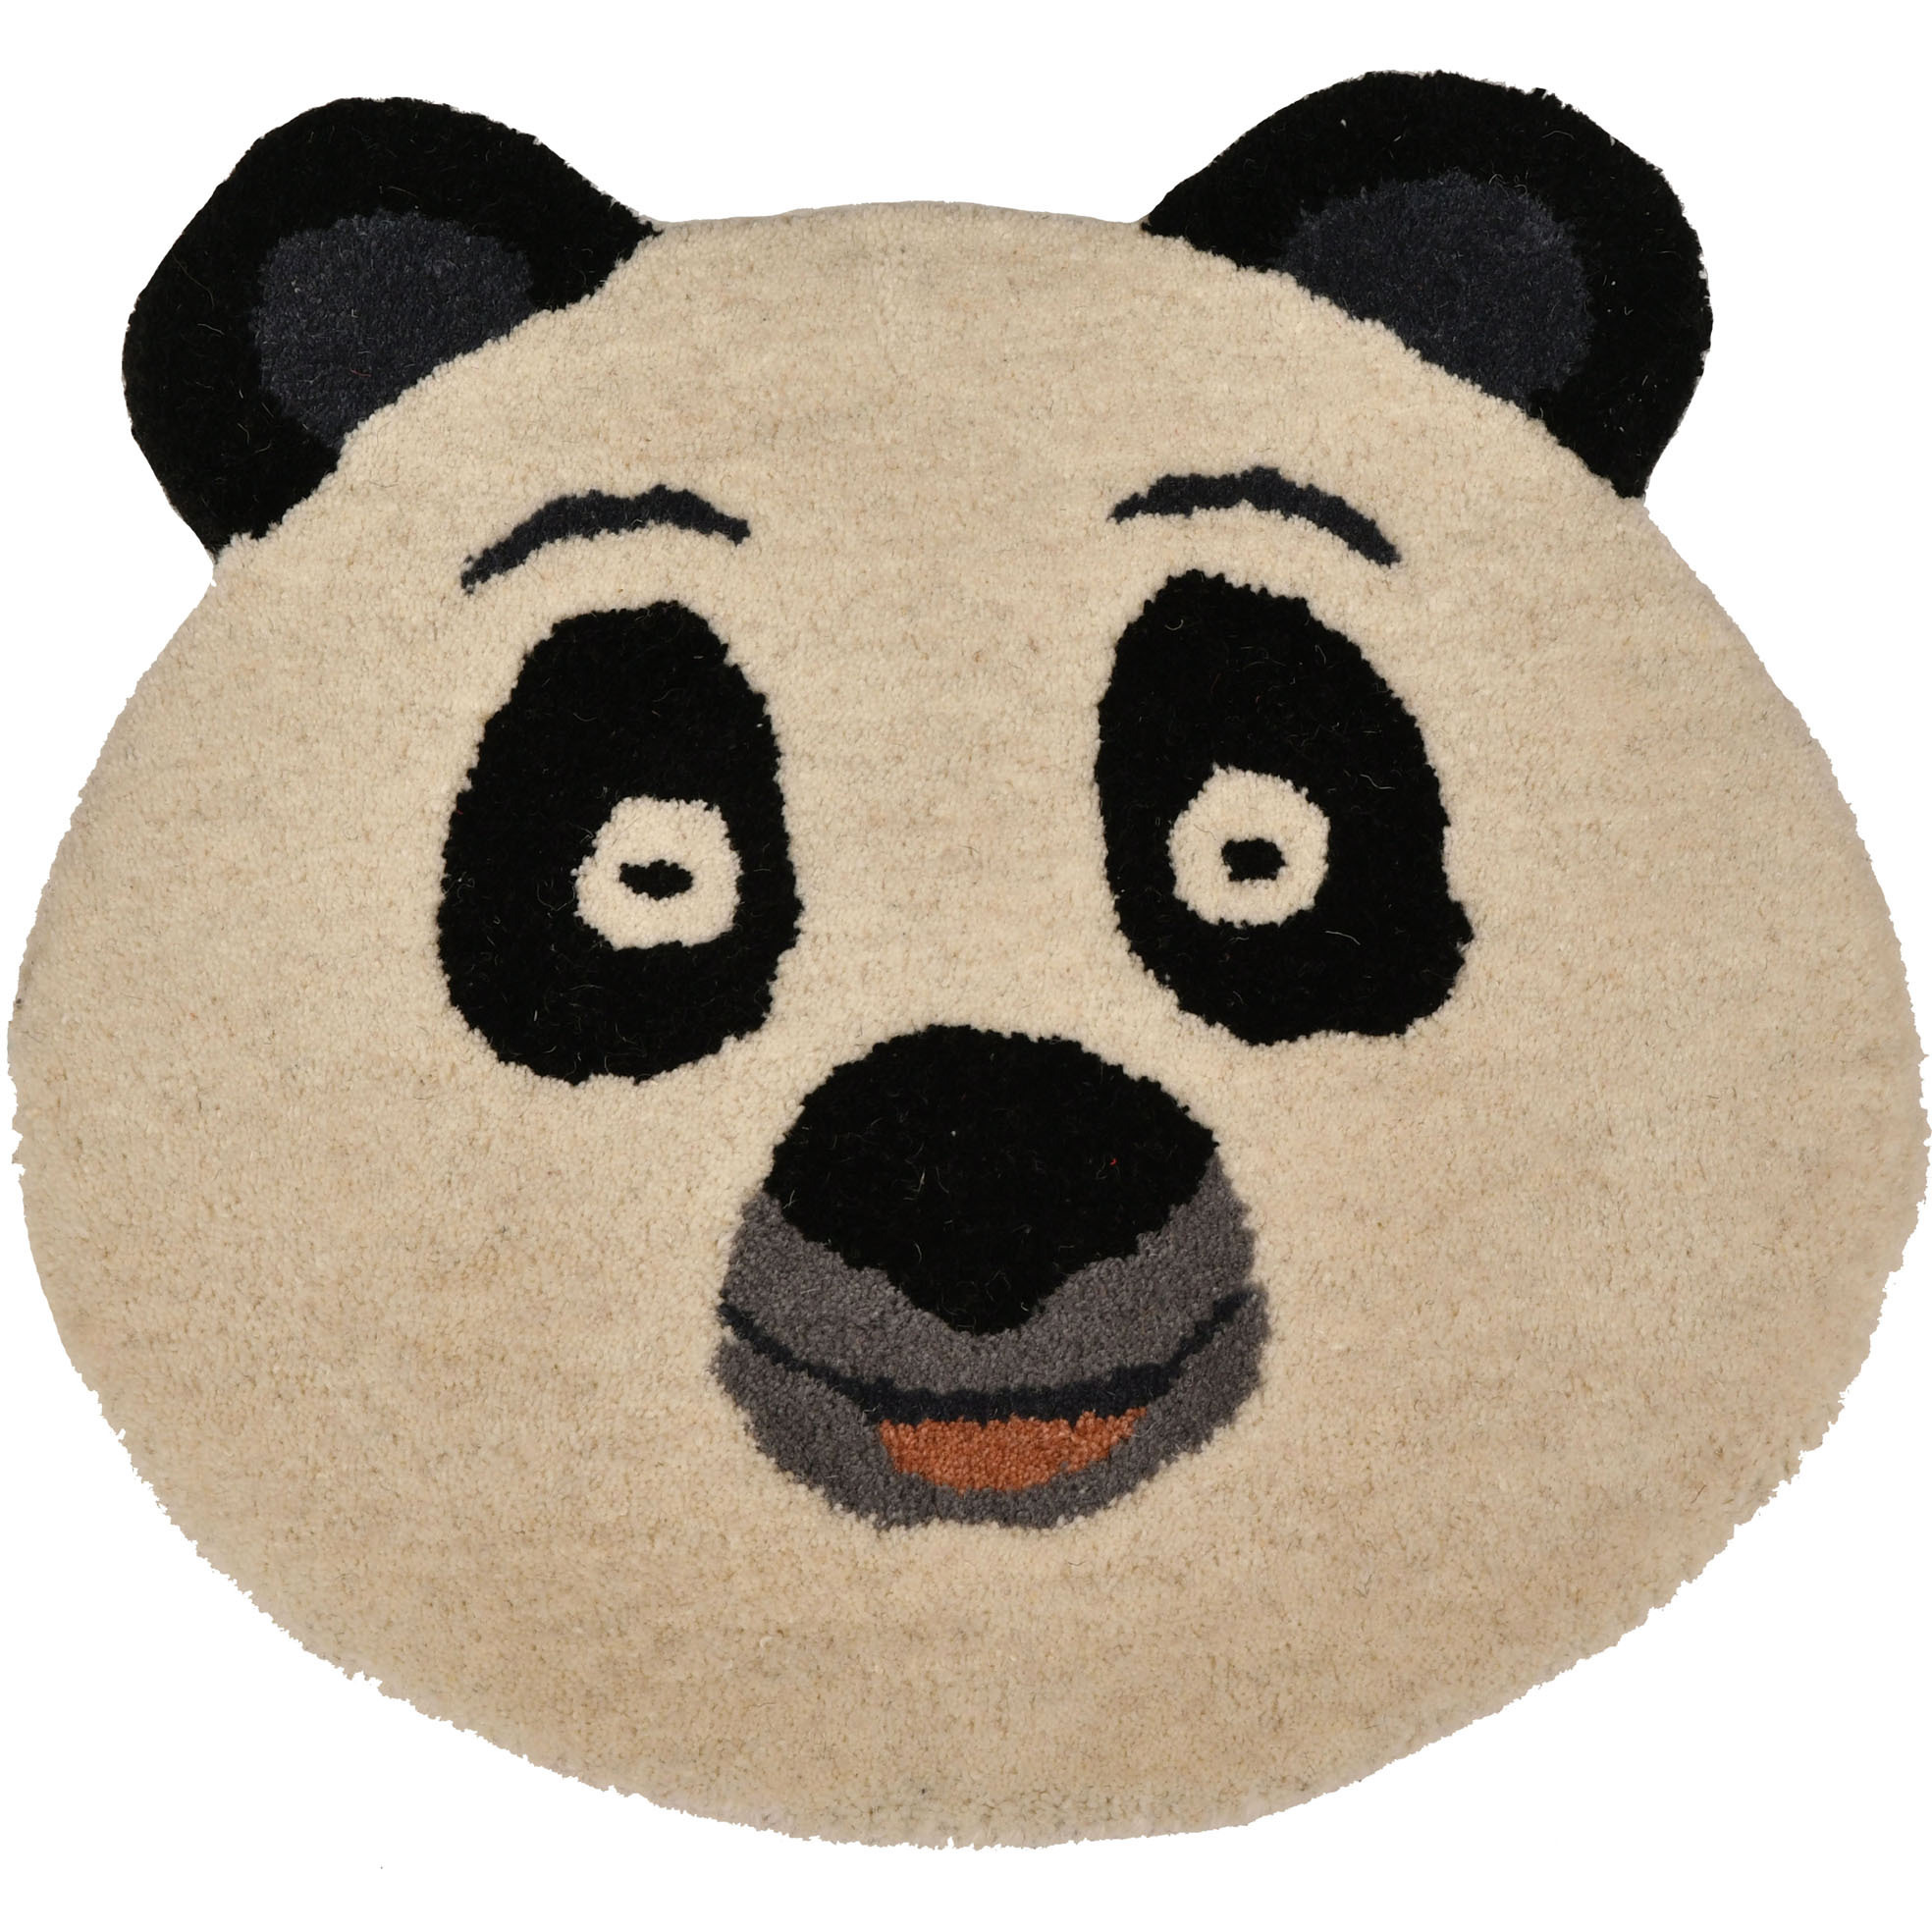 Ivory and Black Little-Panda Mat from Mirzapur